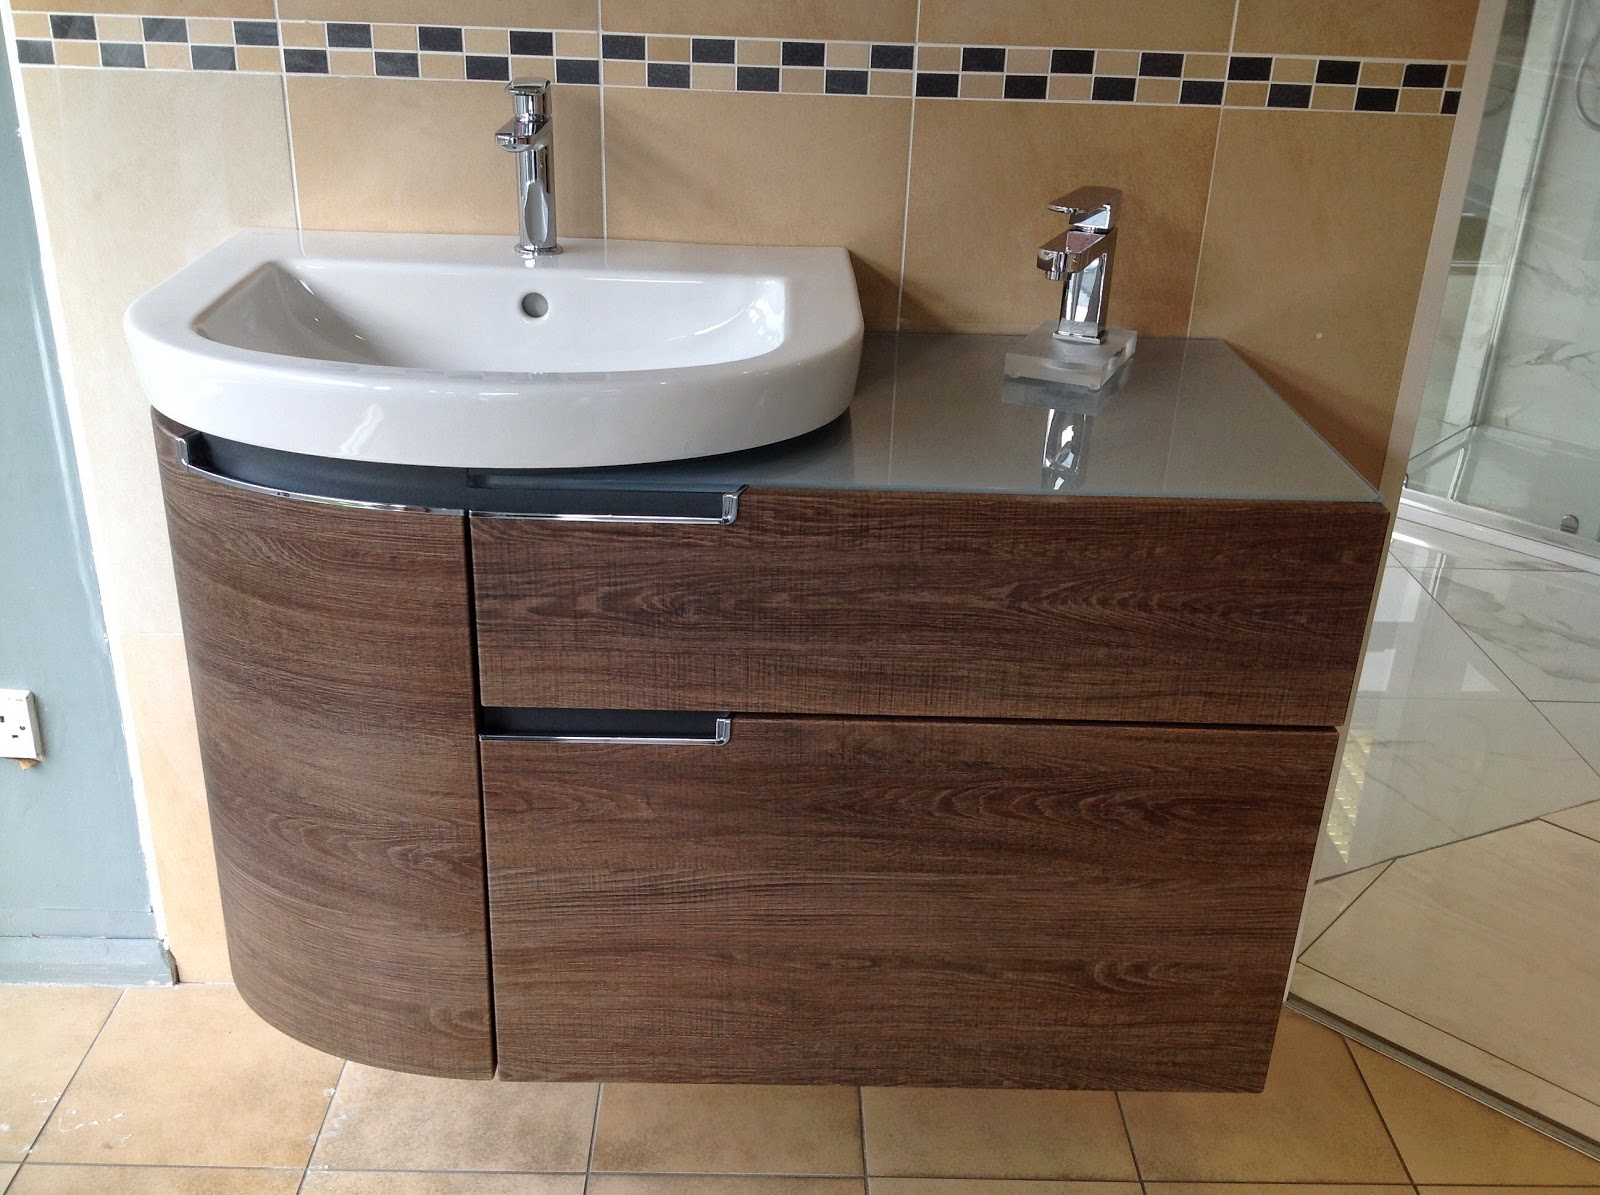 Villeroy and boch bathroom cabinets - New Villeroy And Boch Bathroom Furniture